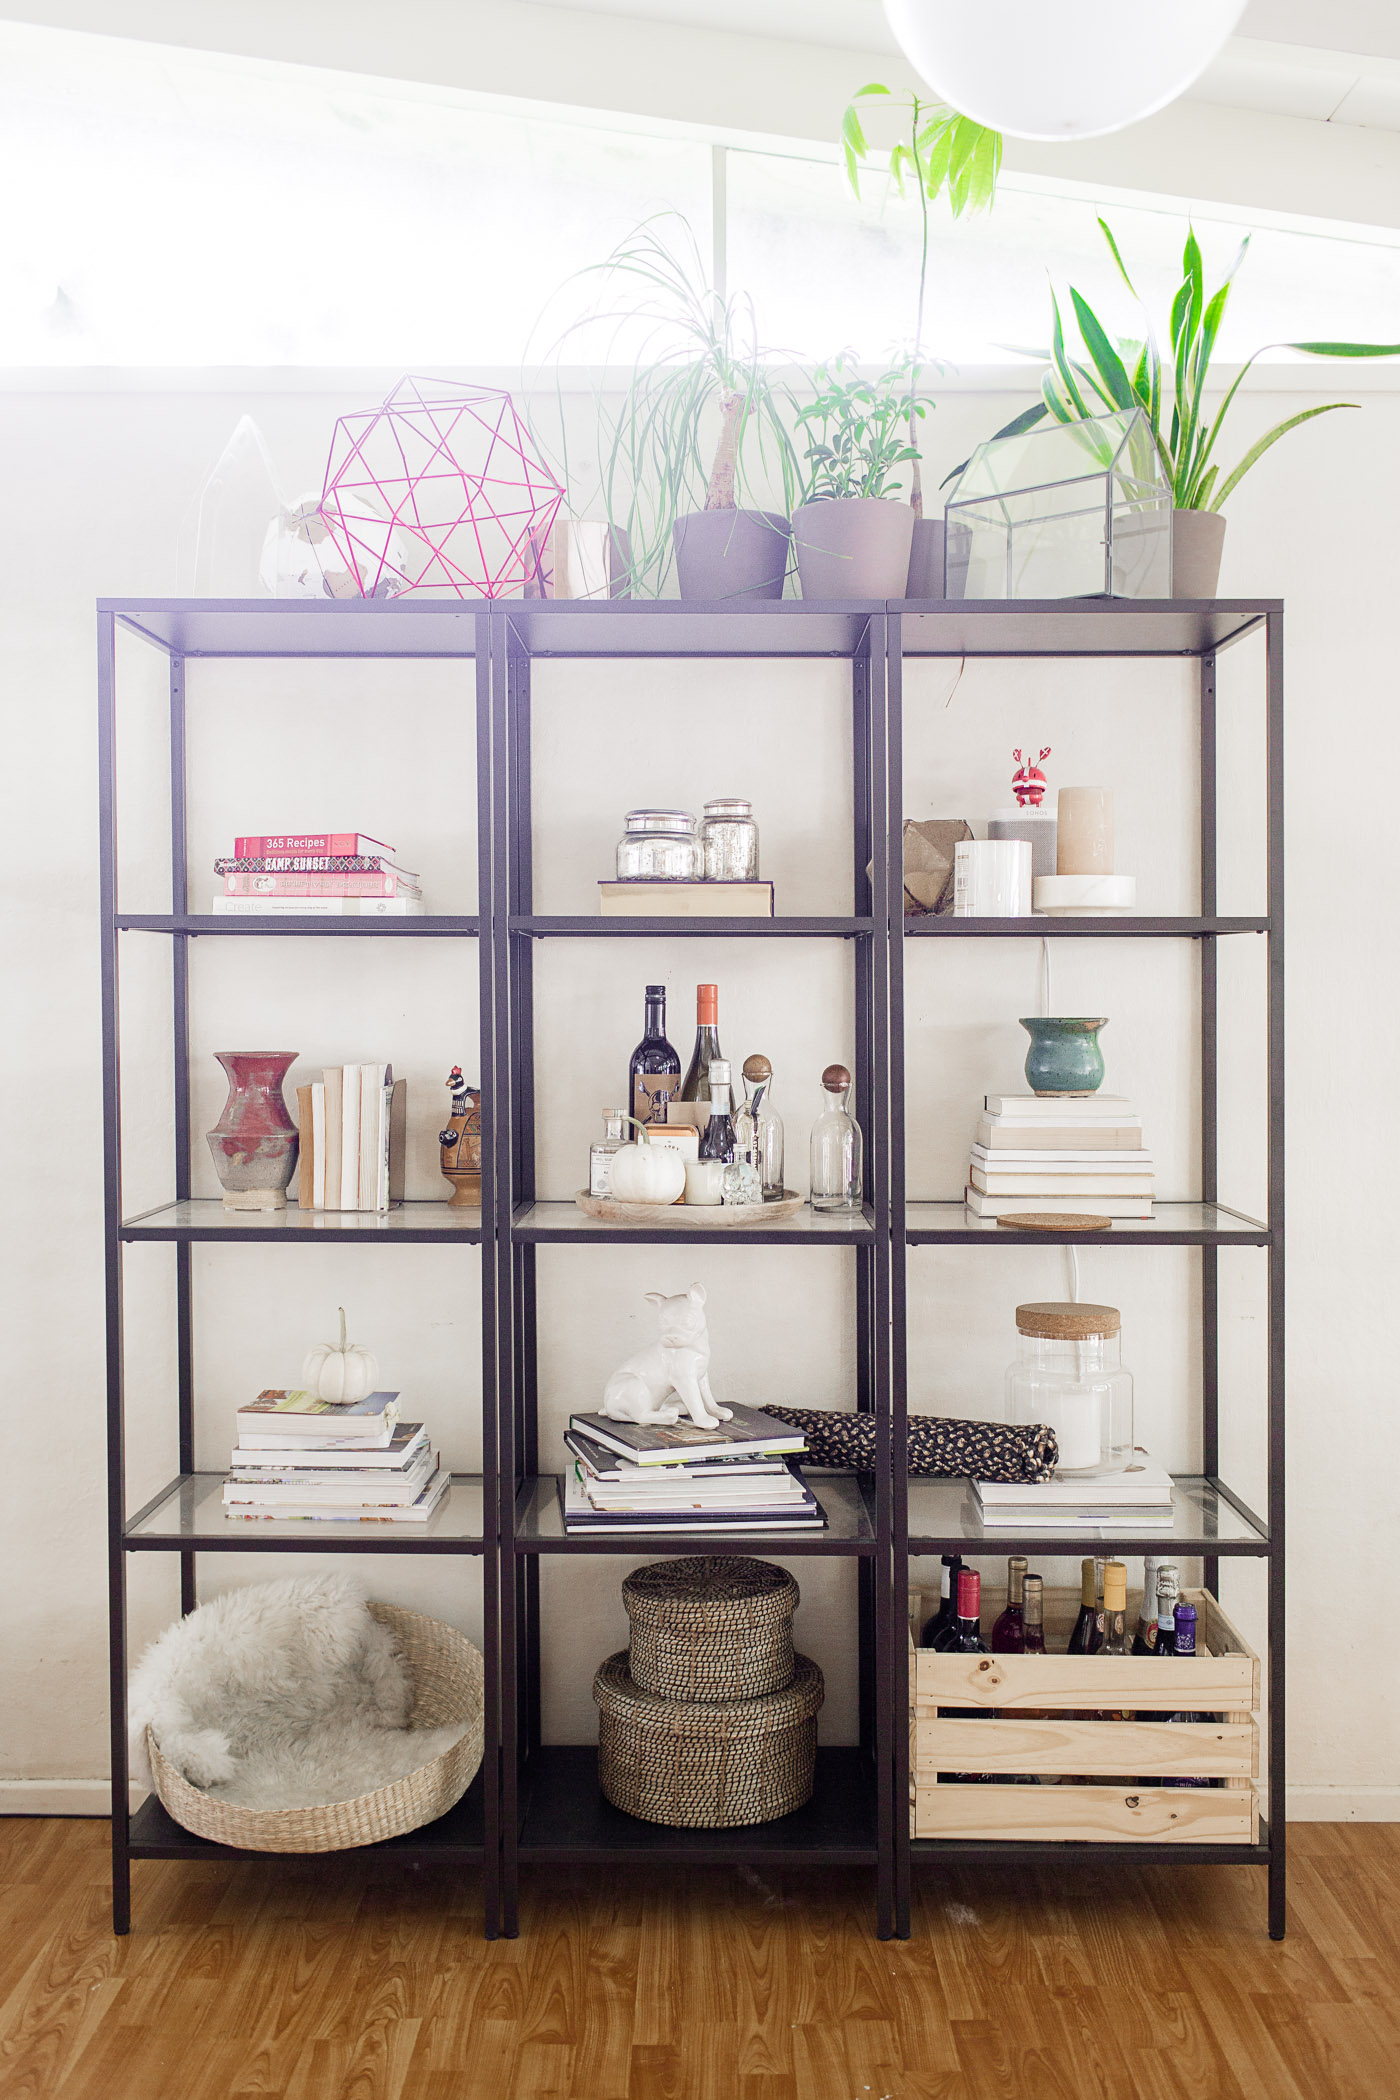 Ikea Hej Easy Steps To Style A Shelf - Hej Doll | Simple Modern